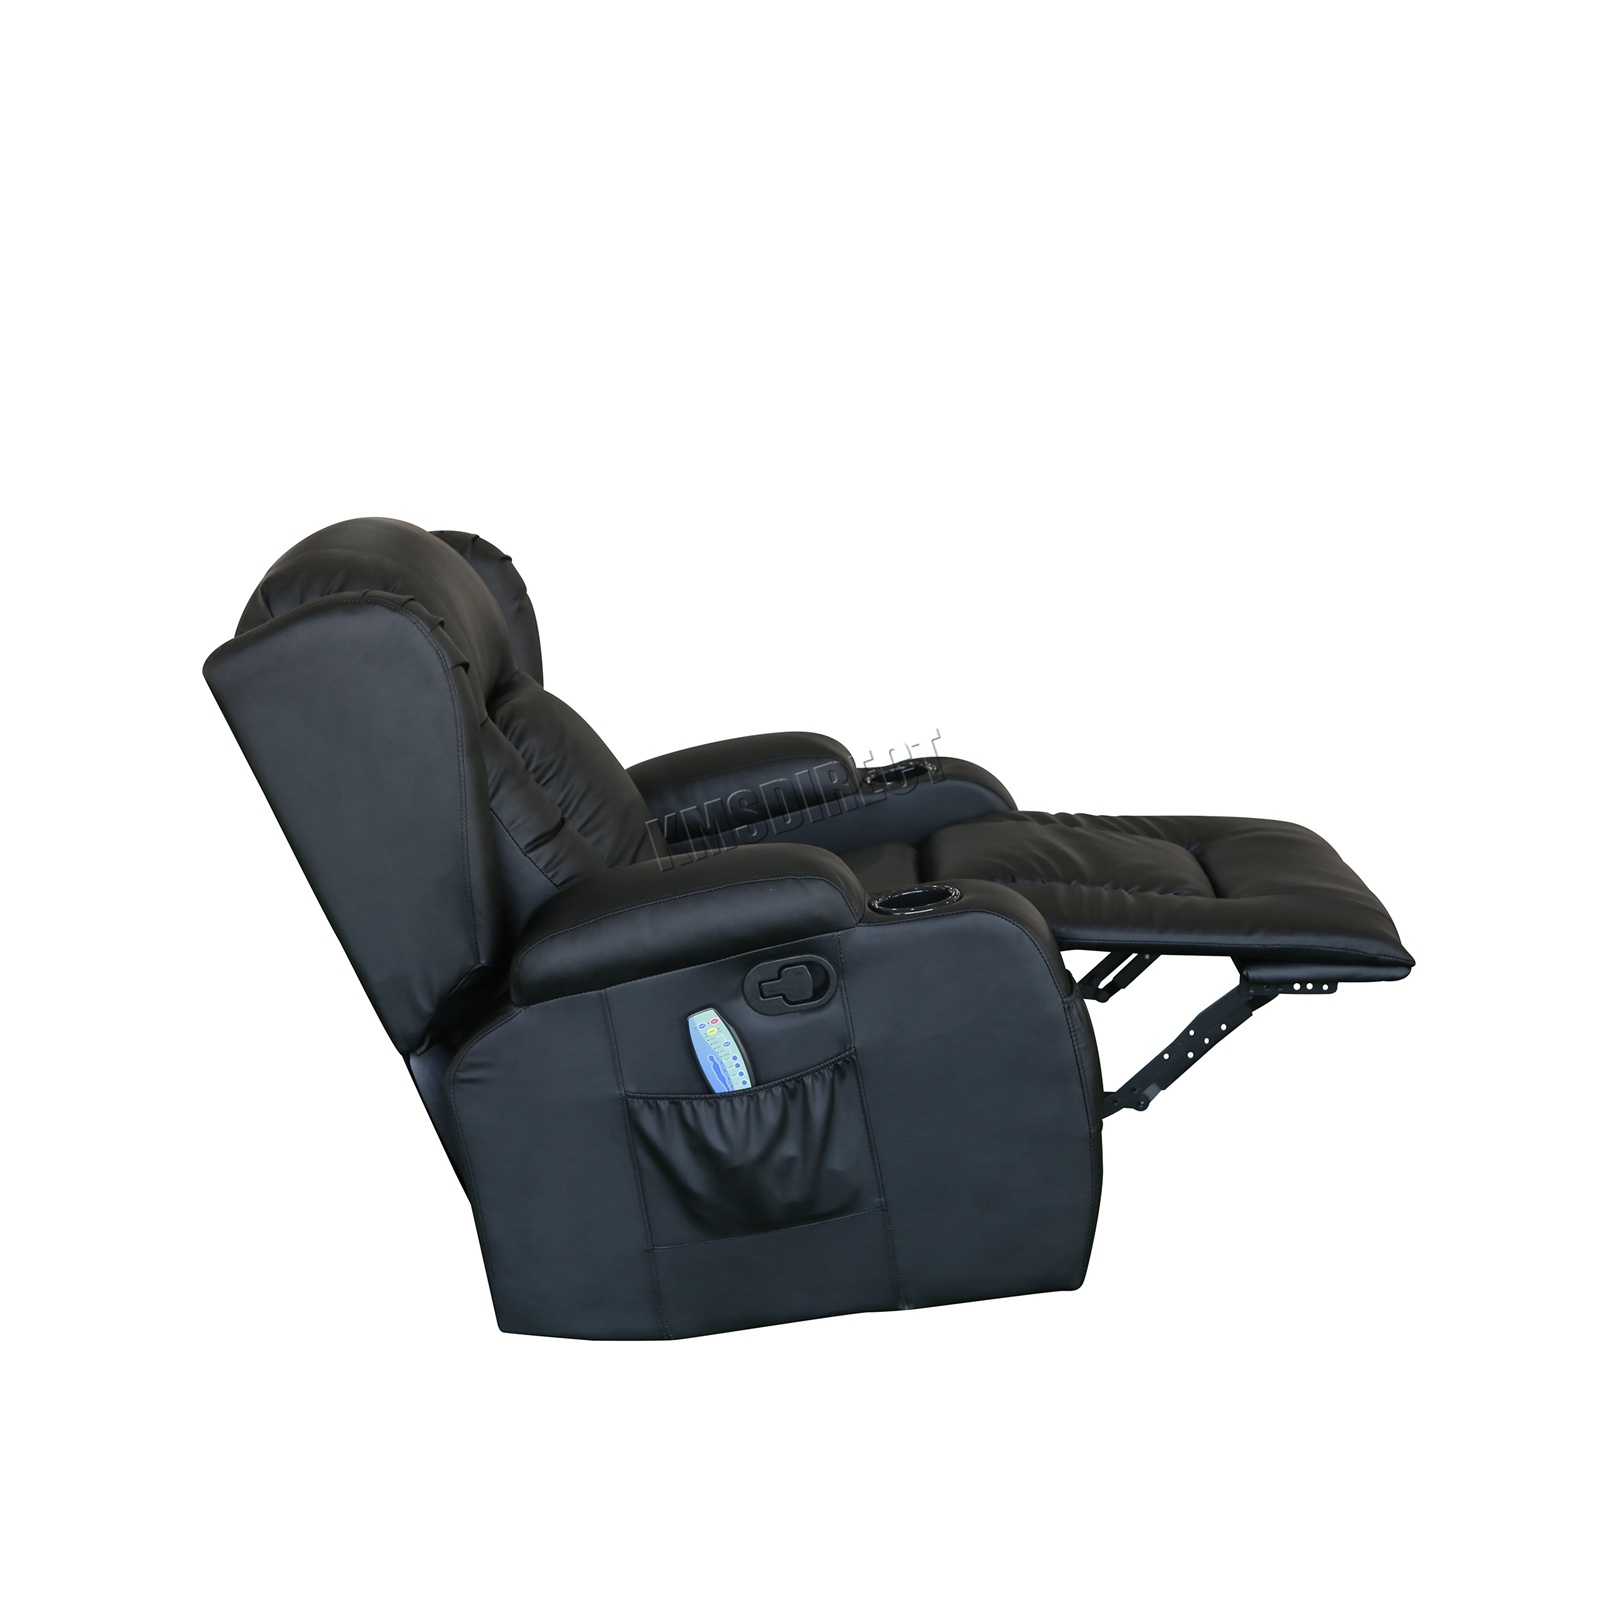 WESTWOOD-Leather-Recliner-Armchair-Swivel-Heated-chair-Massage-Gaming-Chair thumbnail 16